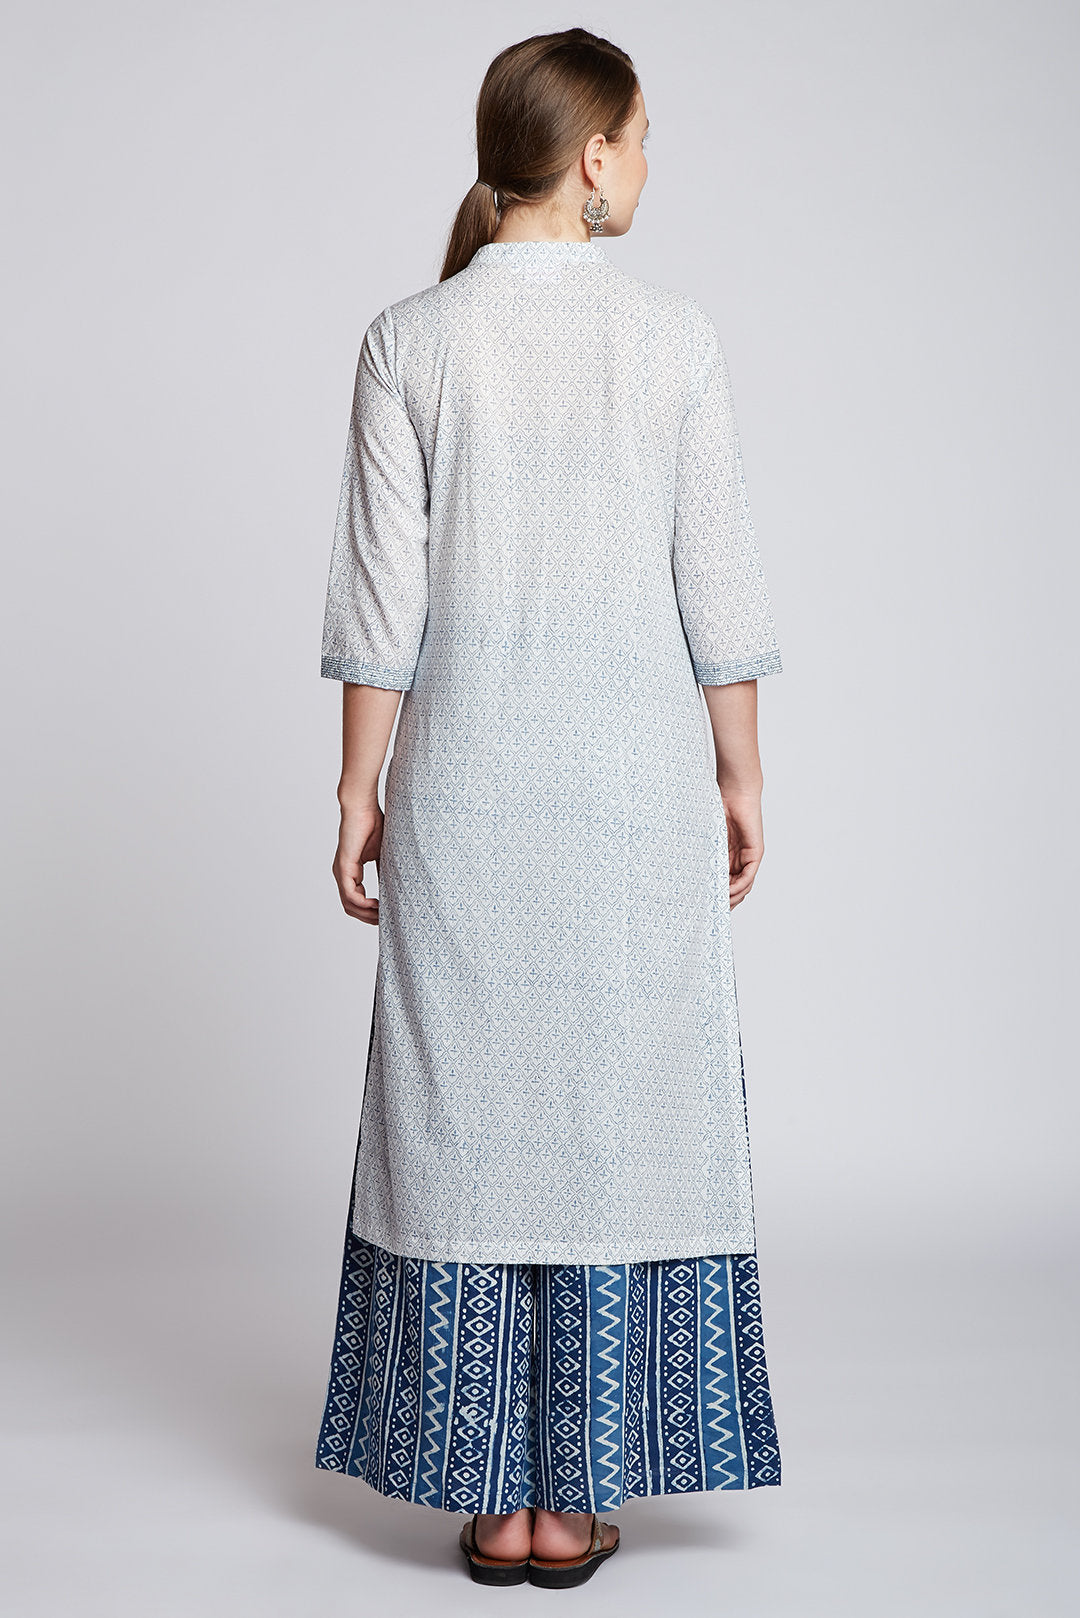 Hand block printed indigo palazzo with long hand block printed cotton kurta